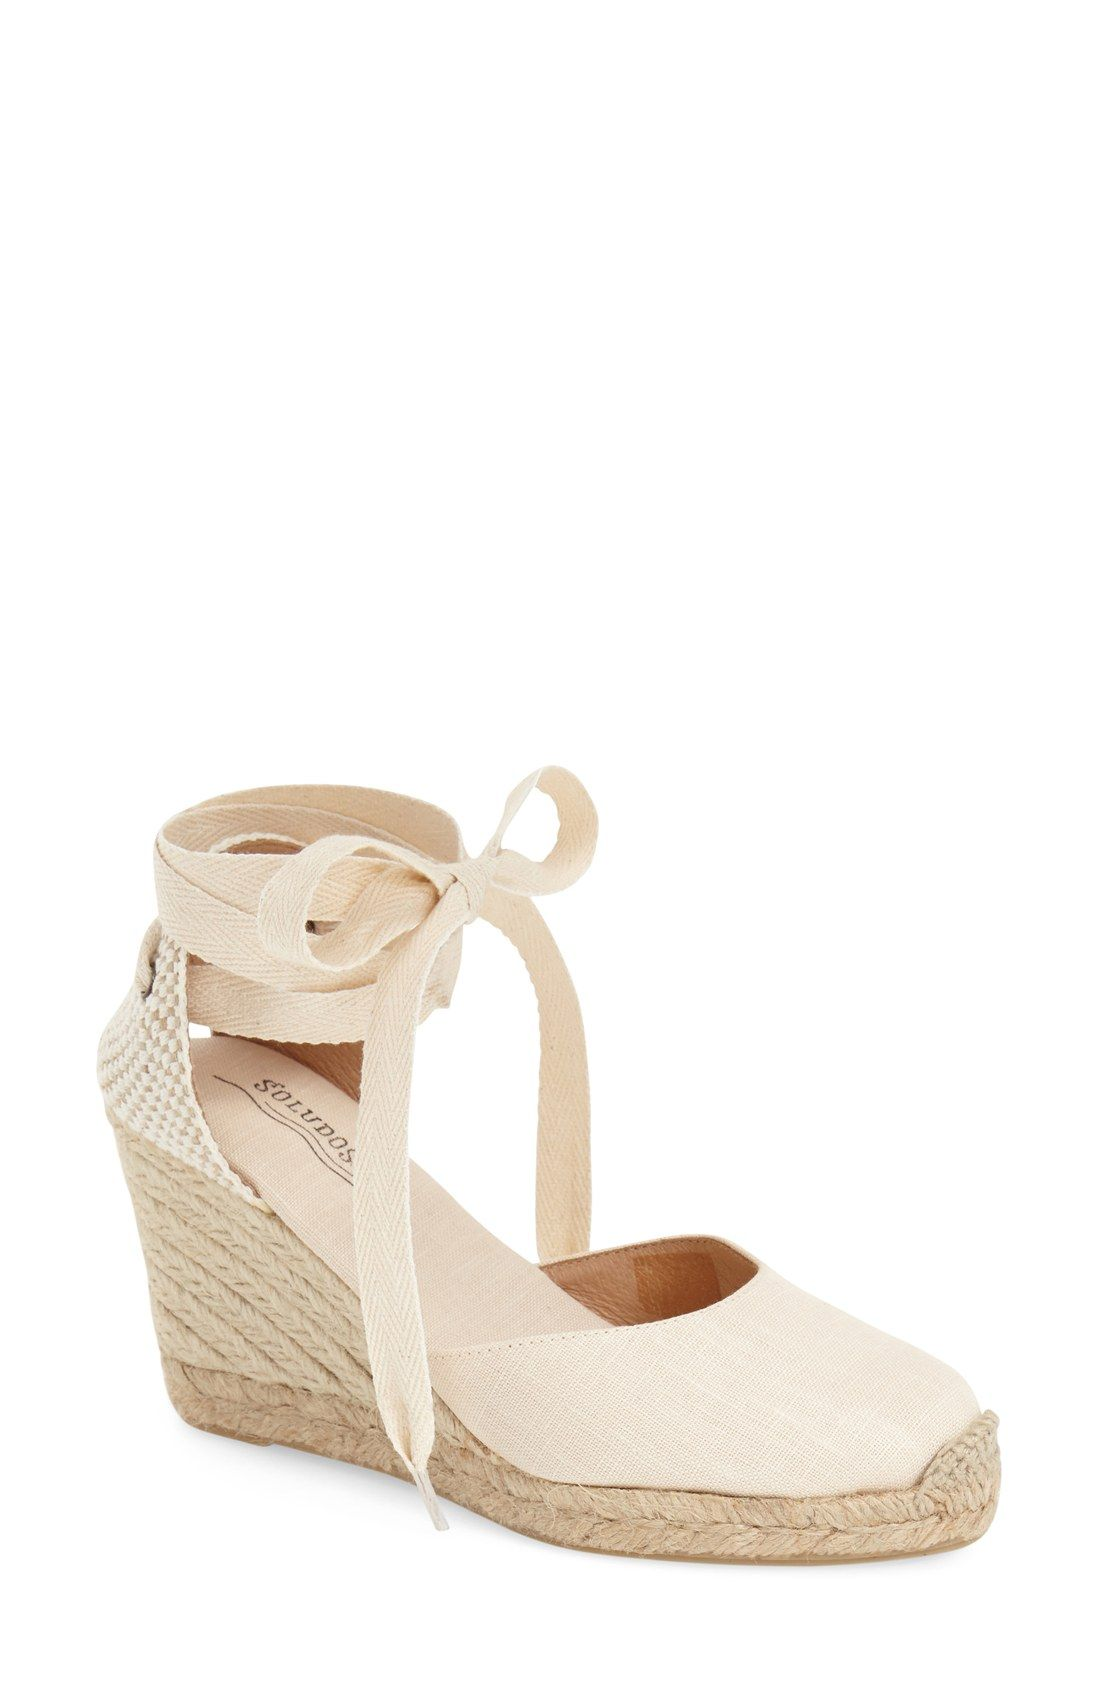 Wedge Lace-Up Espadrille Sandal - WARMTH Tie Wedges - Heels - Shoes Espadrilles, Black Leather And